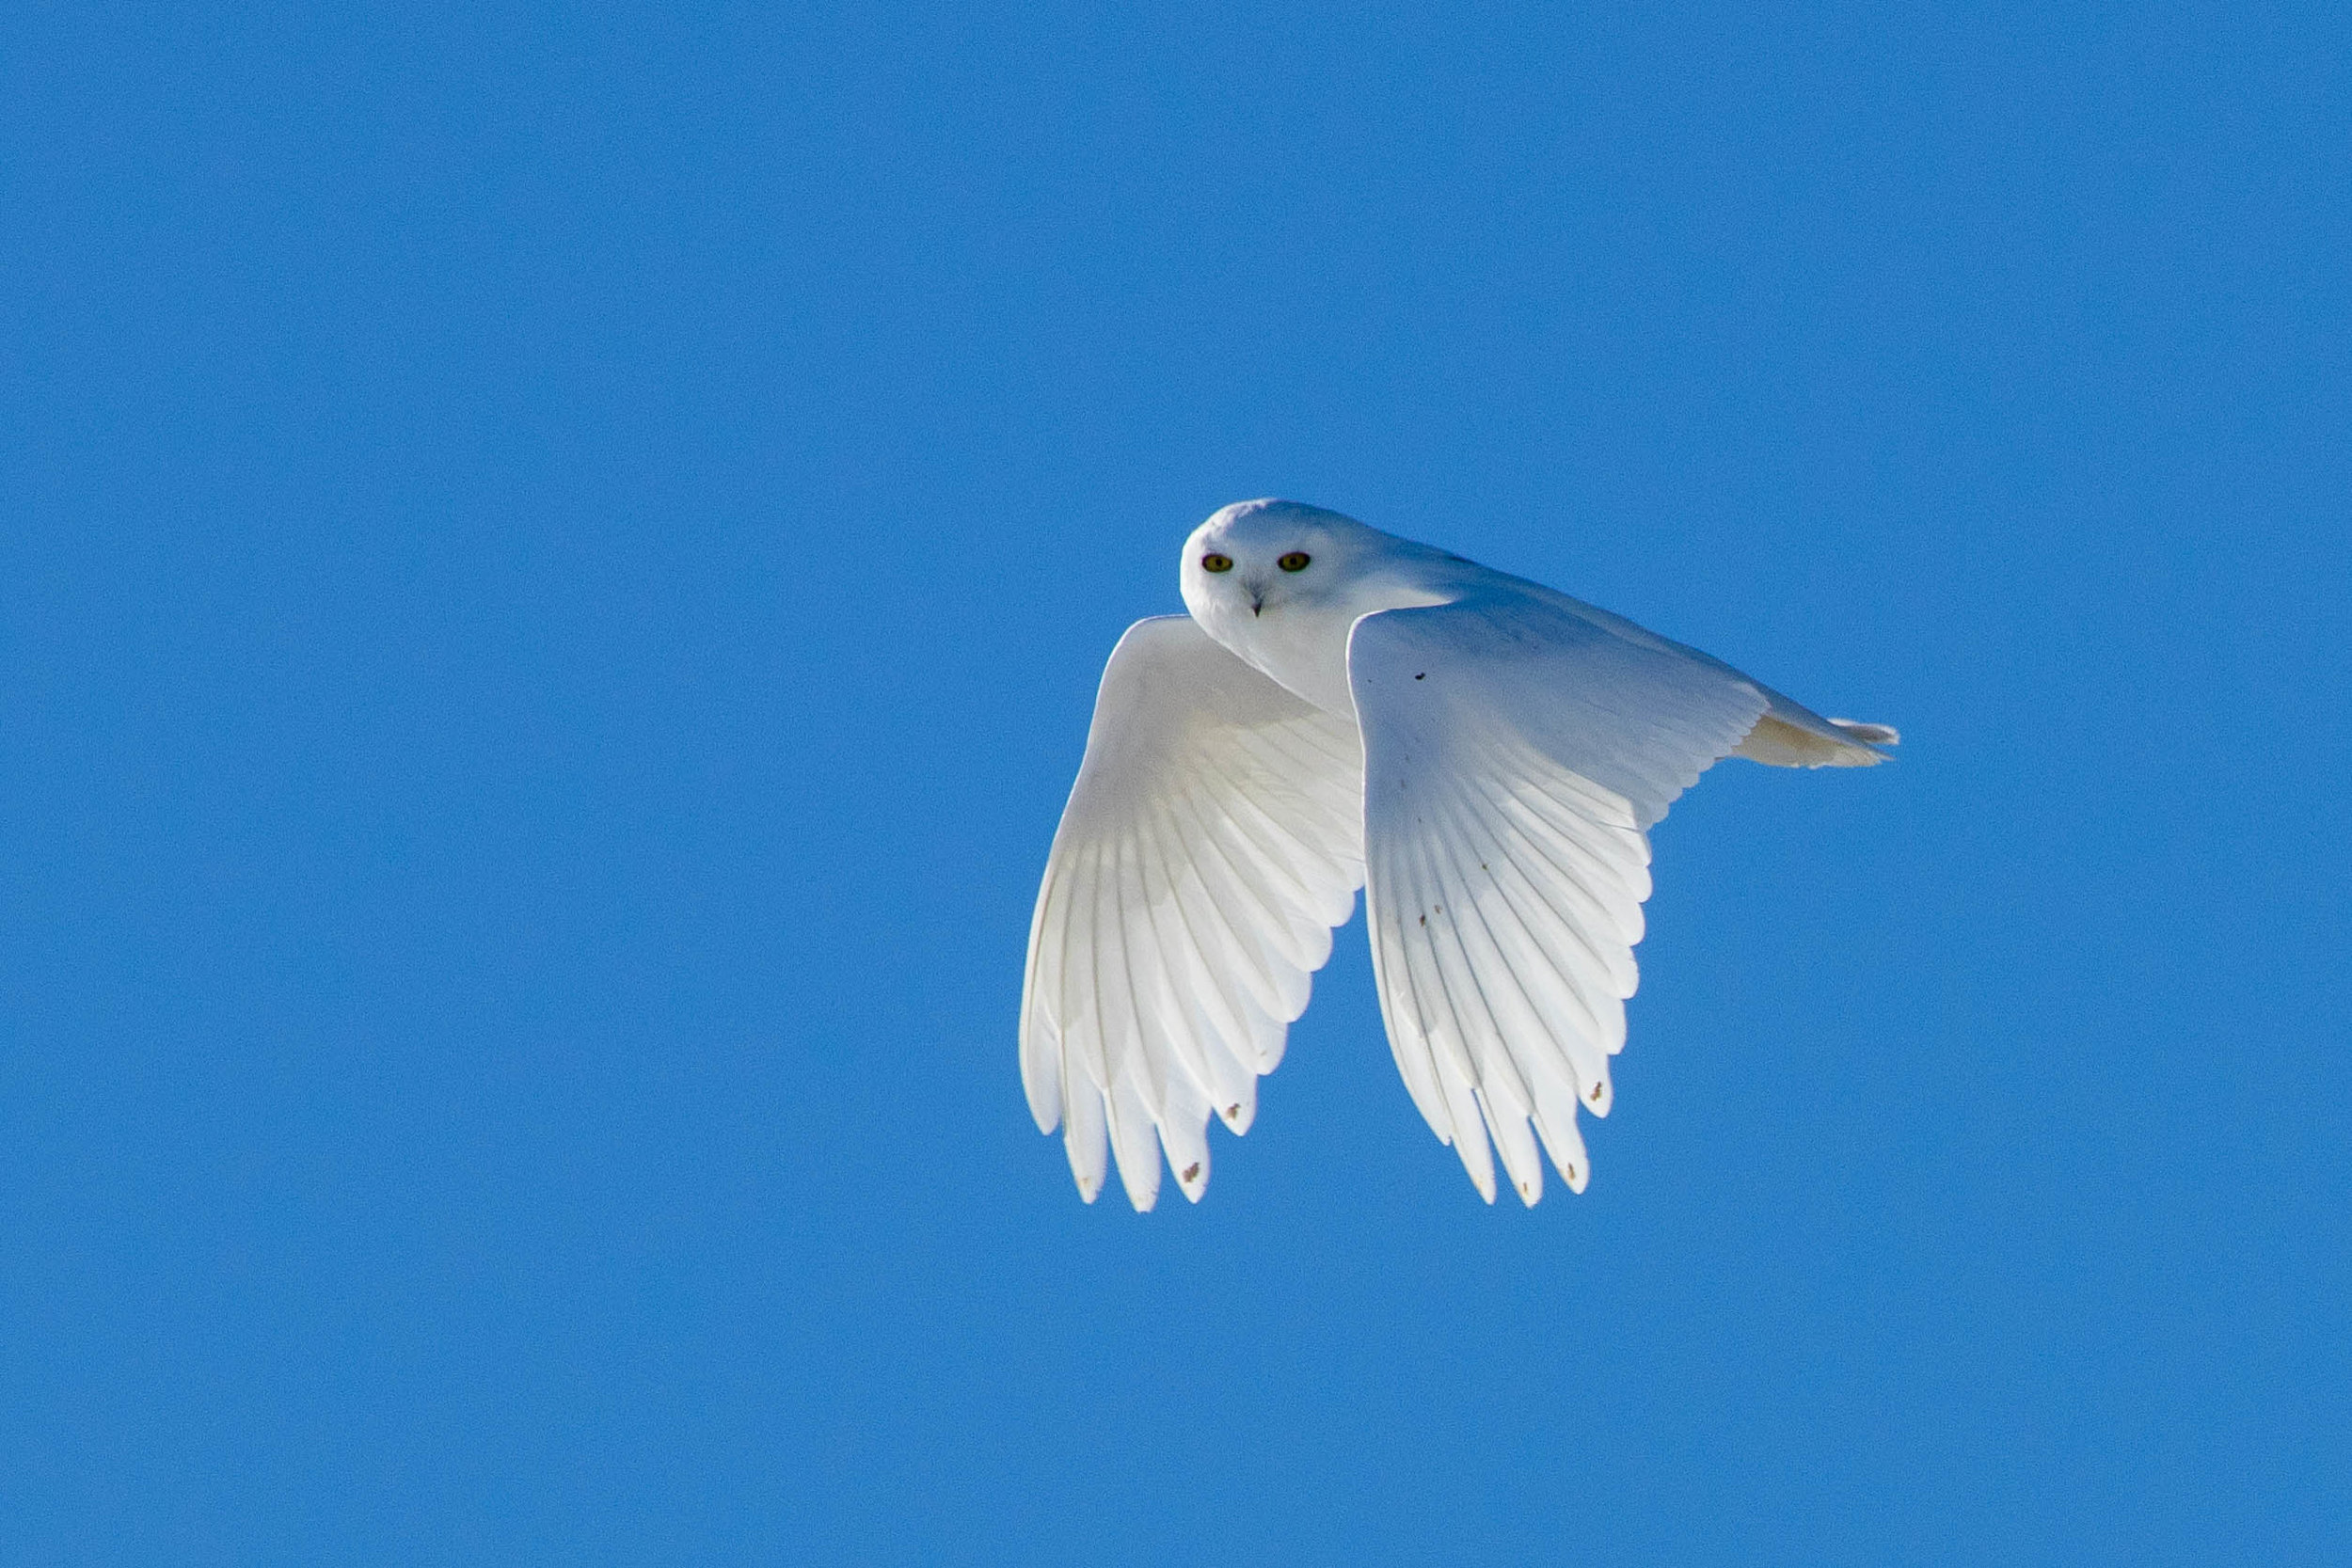 Snowy owl flying wings down.jpg